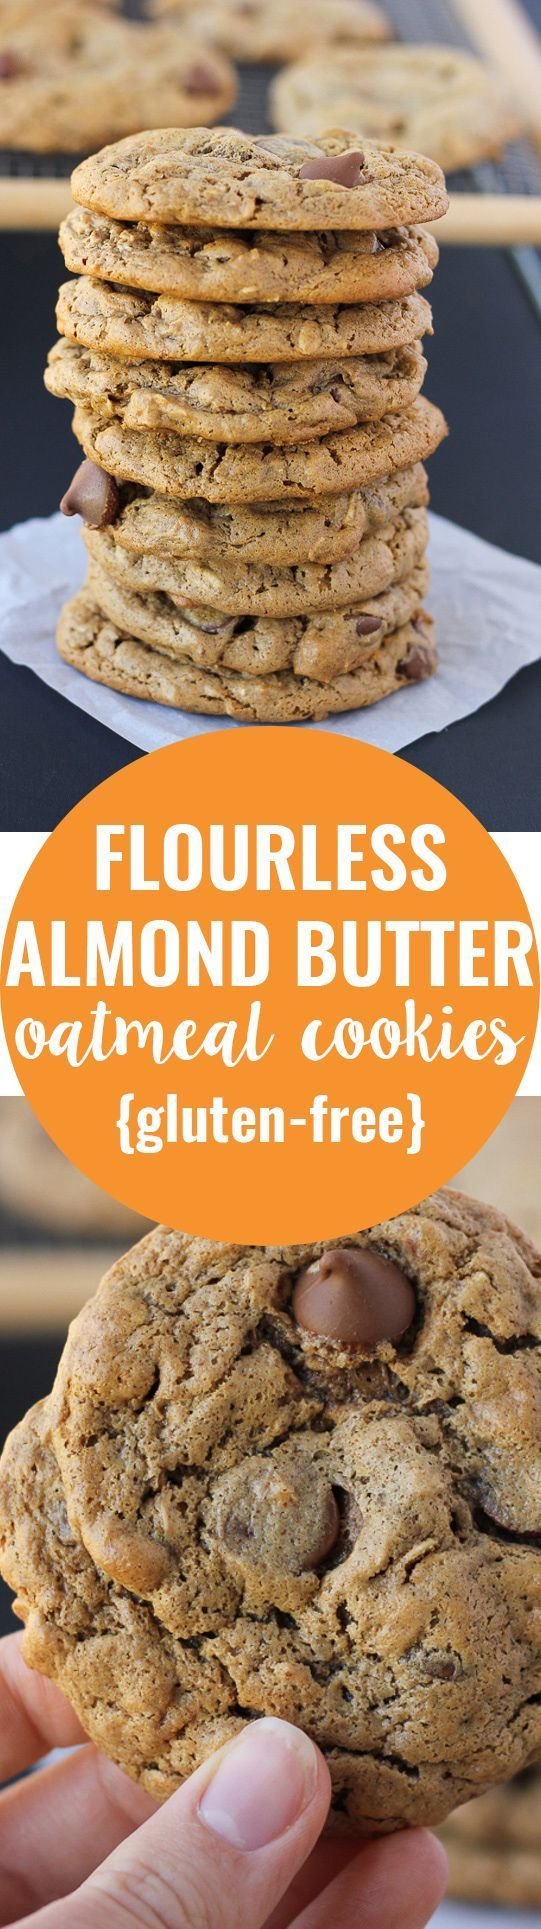 Flourless Almond Butter Oatmeal Cookies! Gluten-free and made with pantry…